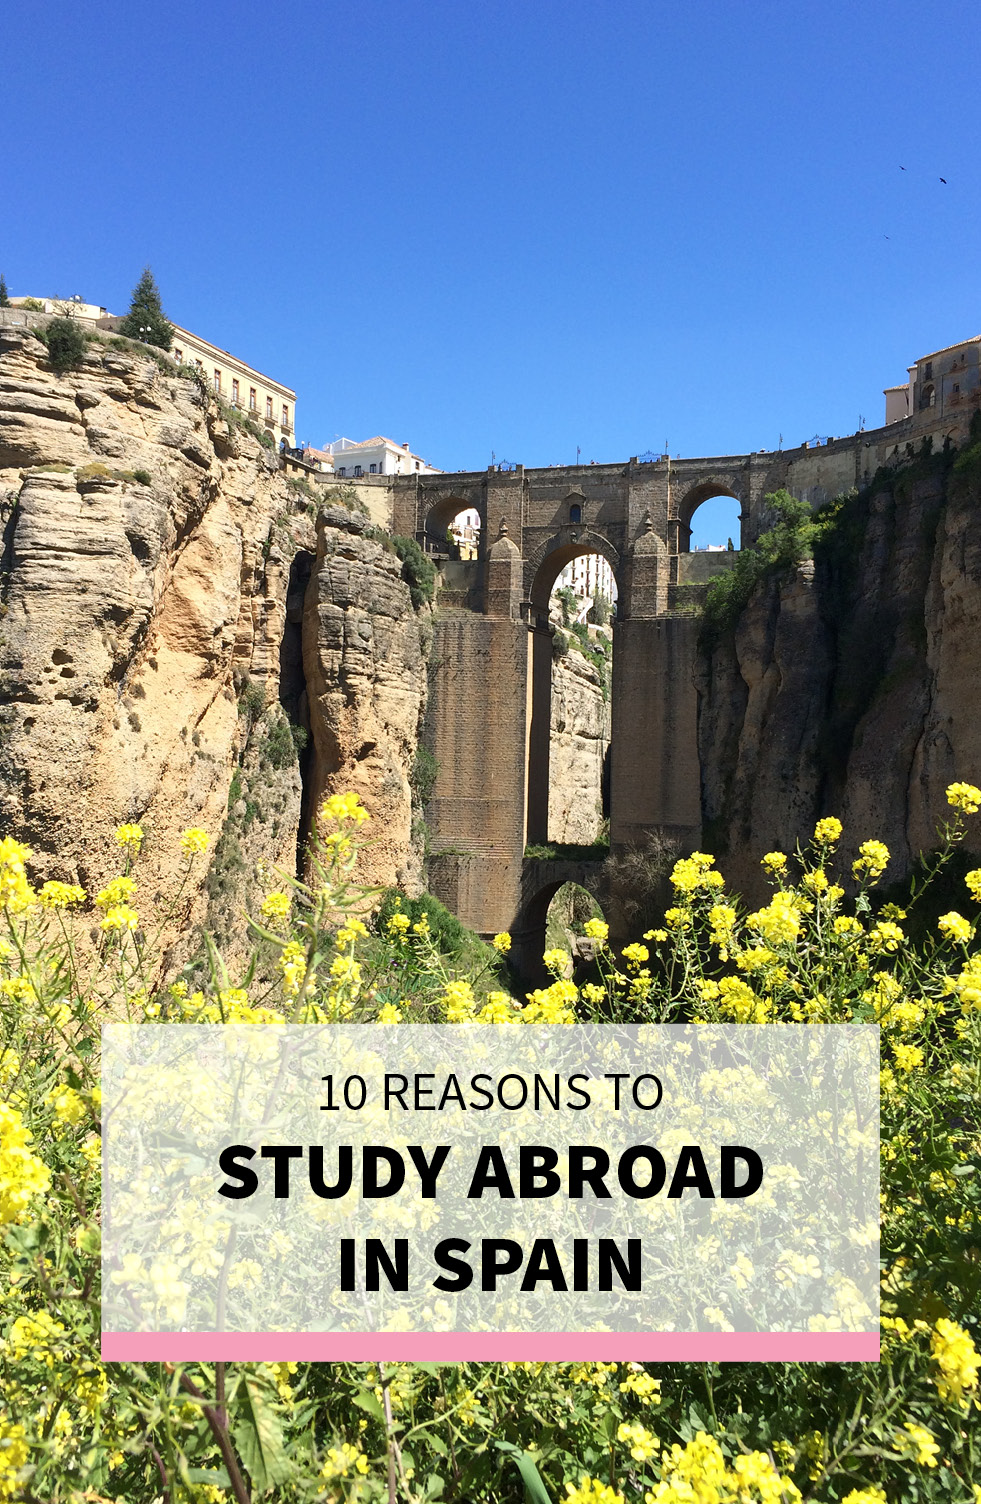 Why You Should Study Abroad in Spain